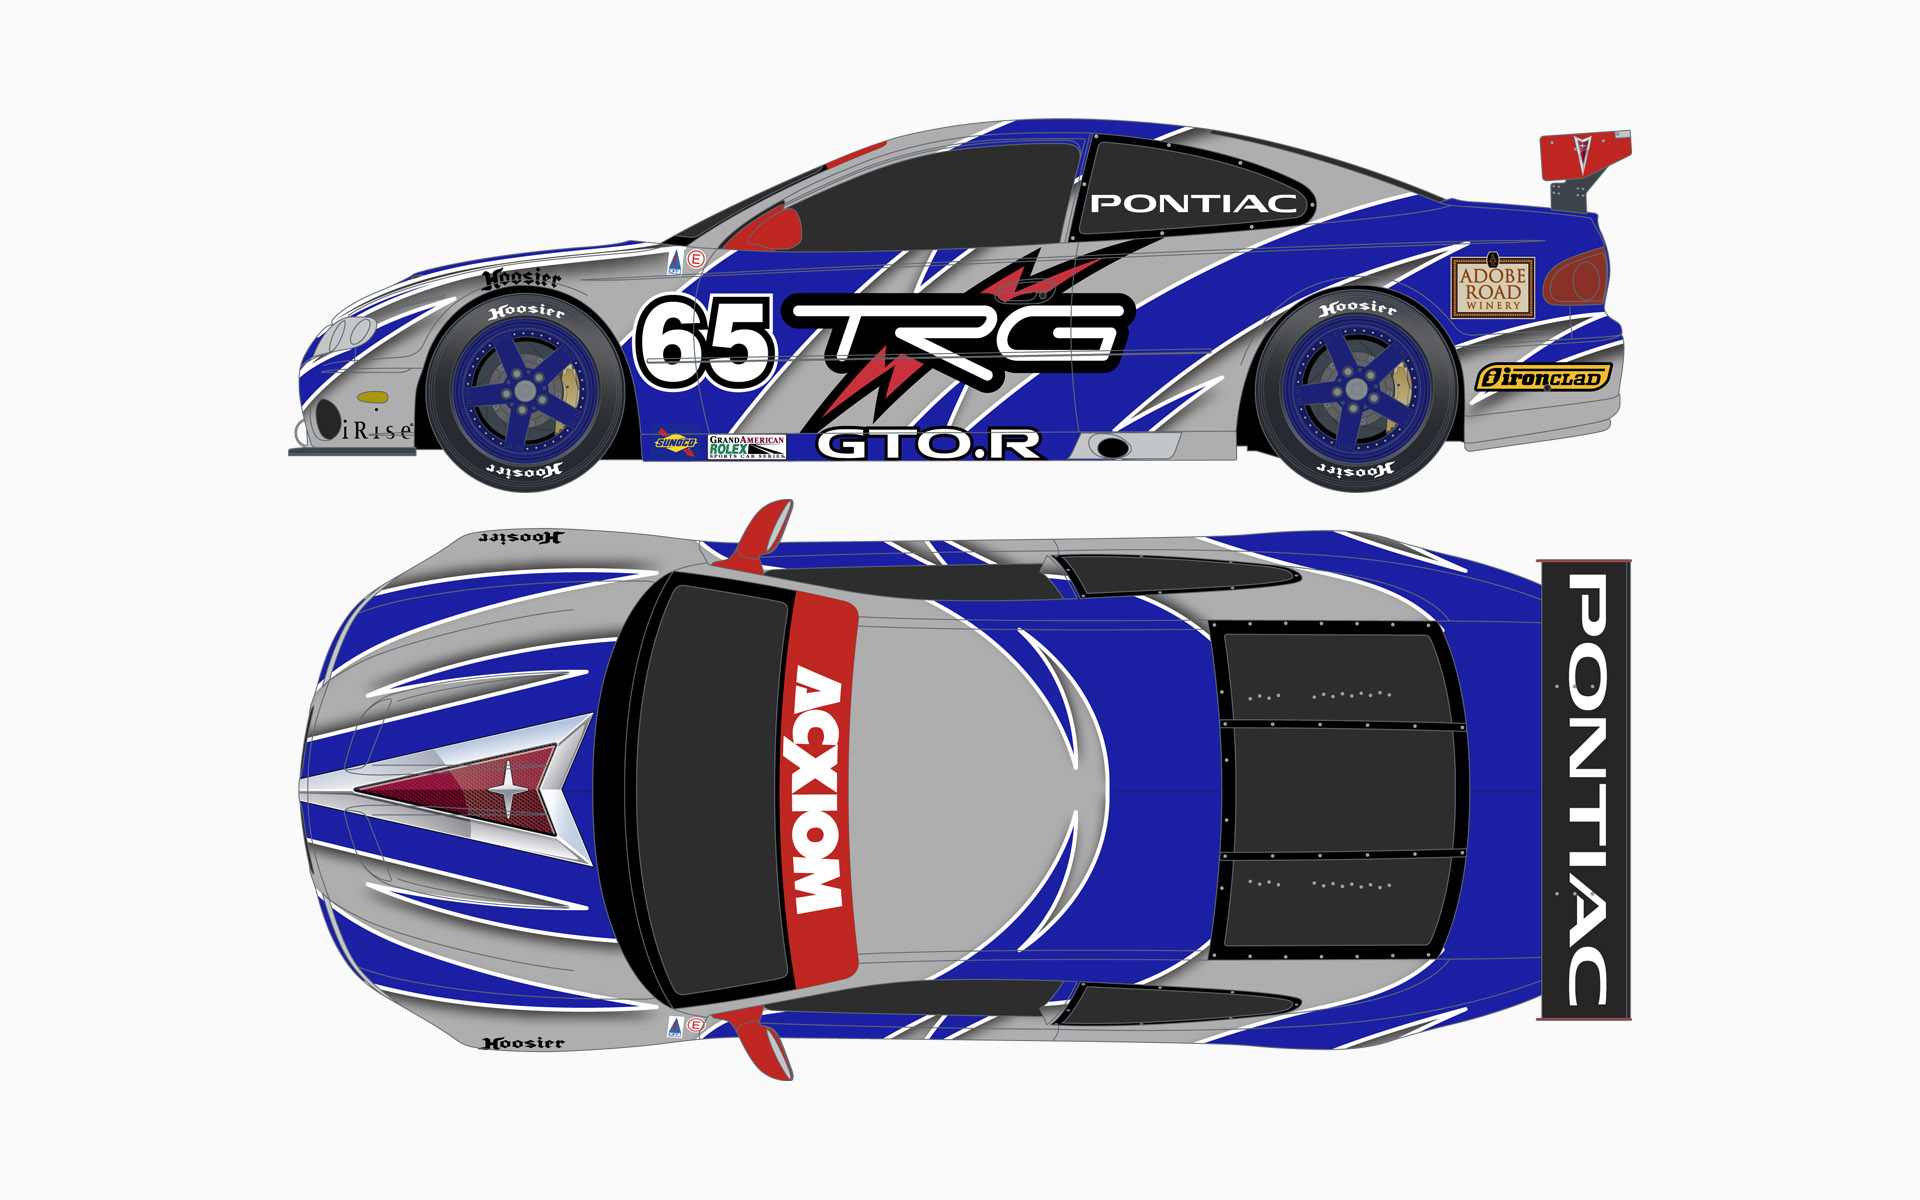 2005 GM Racing Pontiac GTO.R Livery Elevations